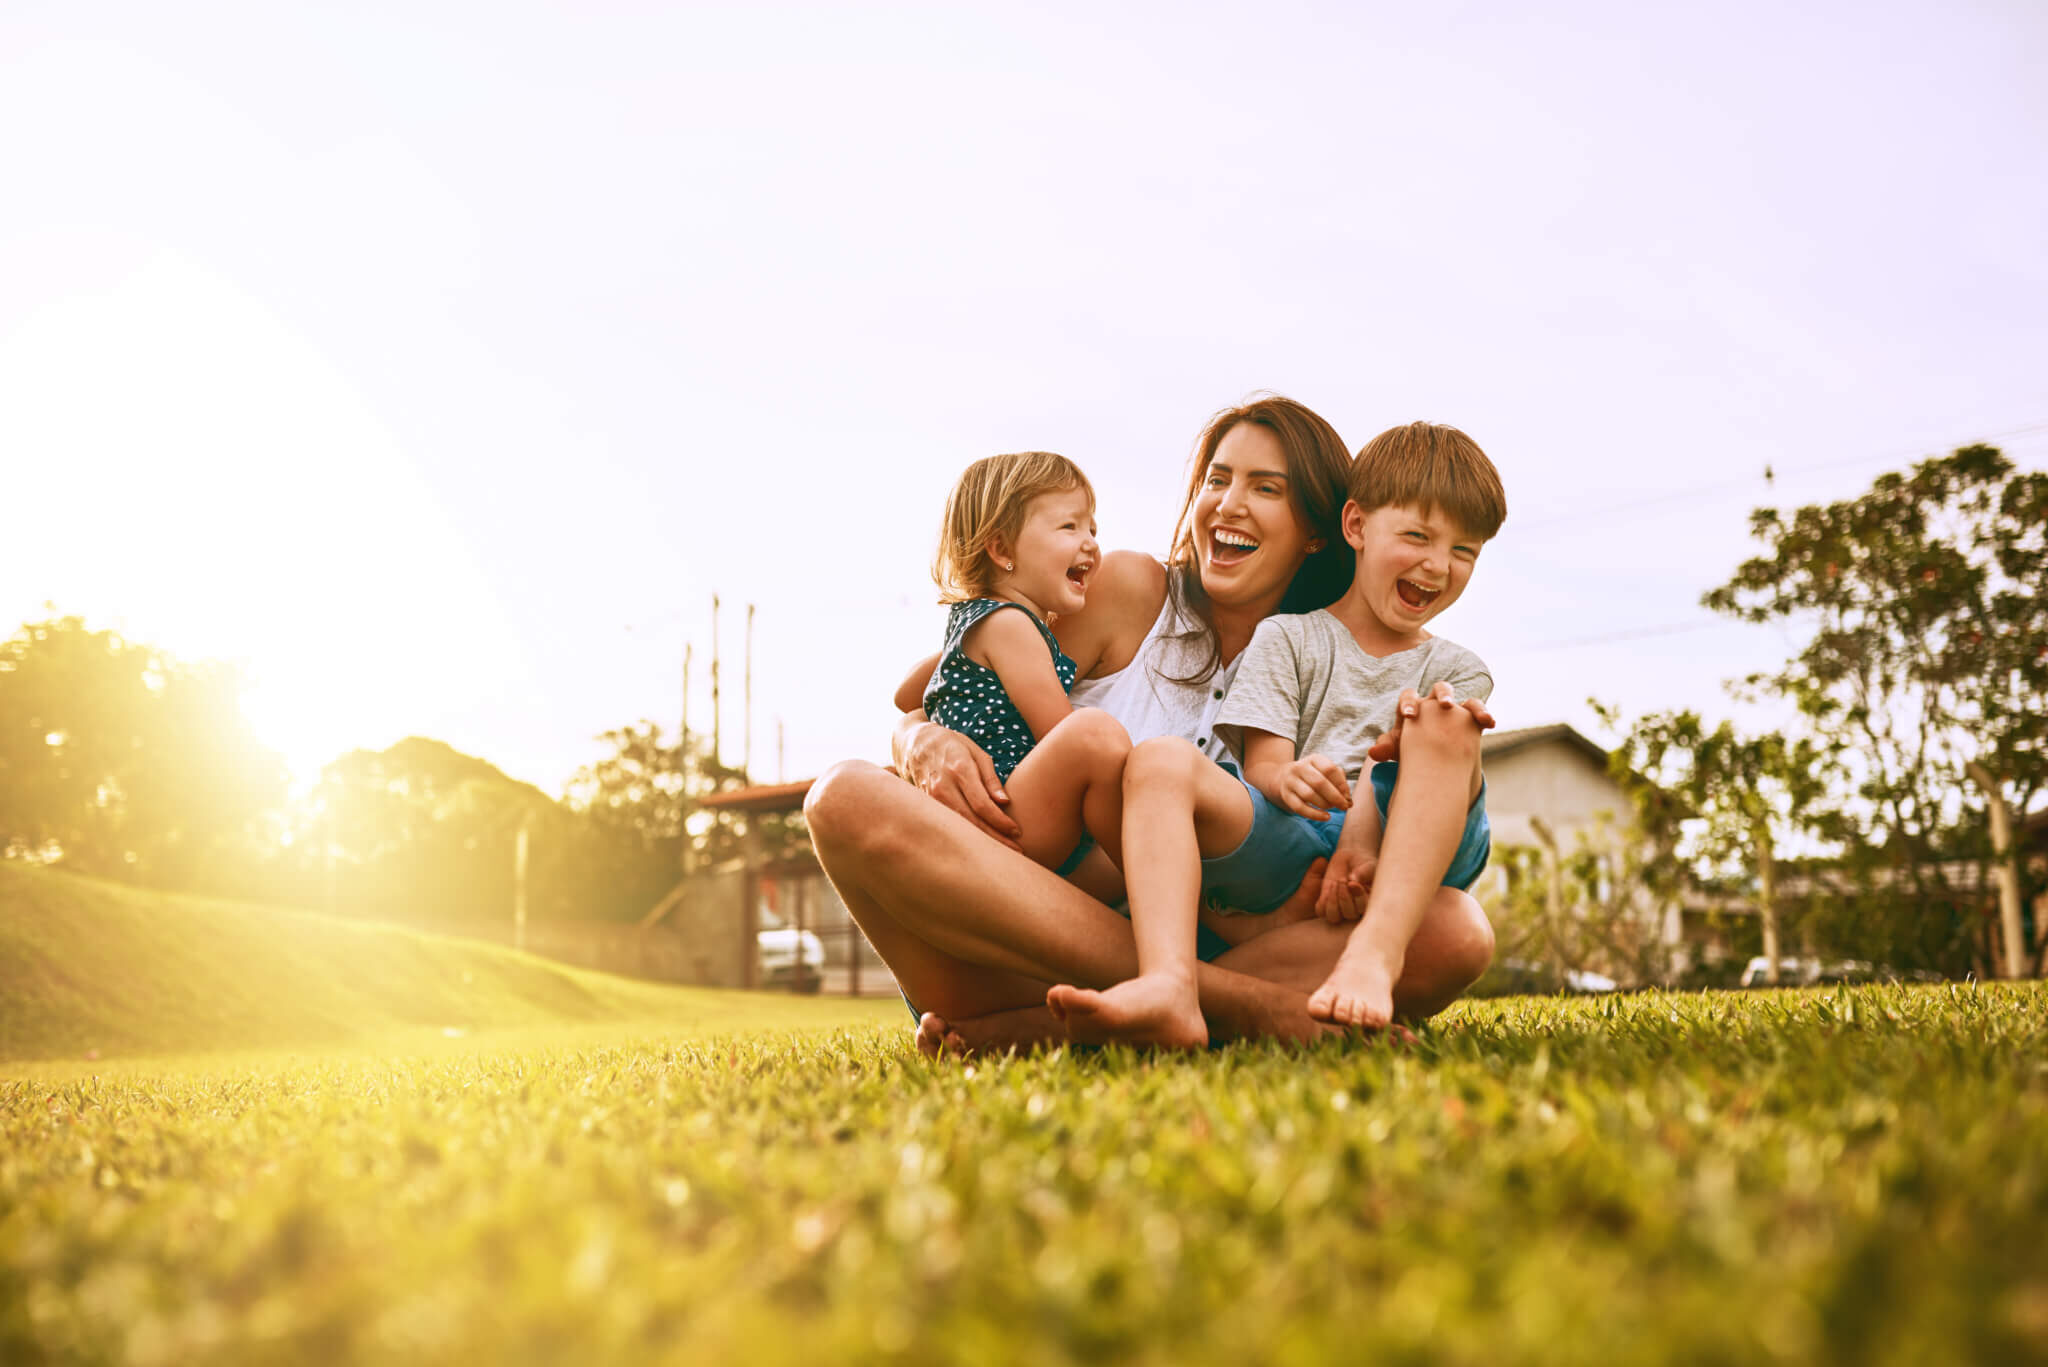 Mom and two young children laughing together